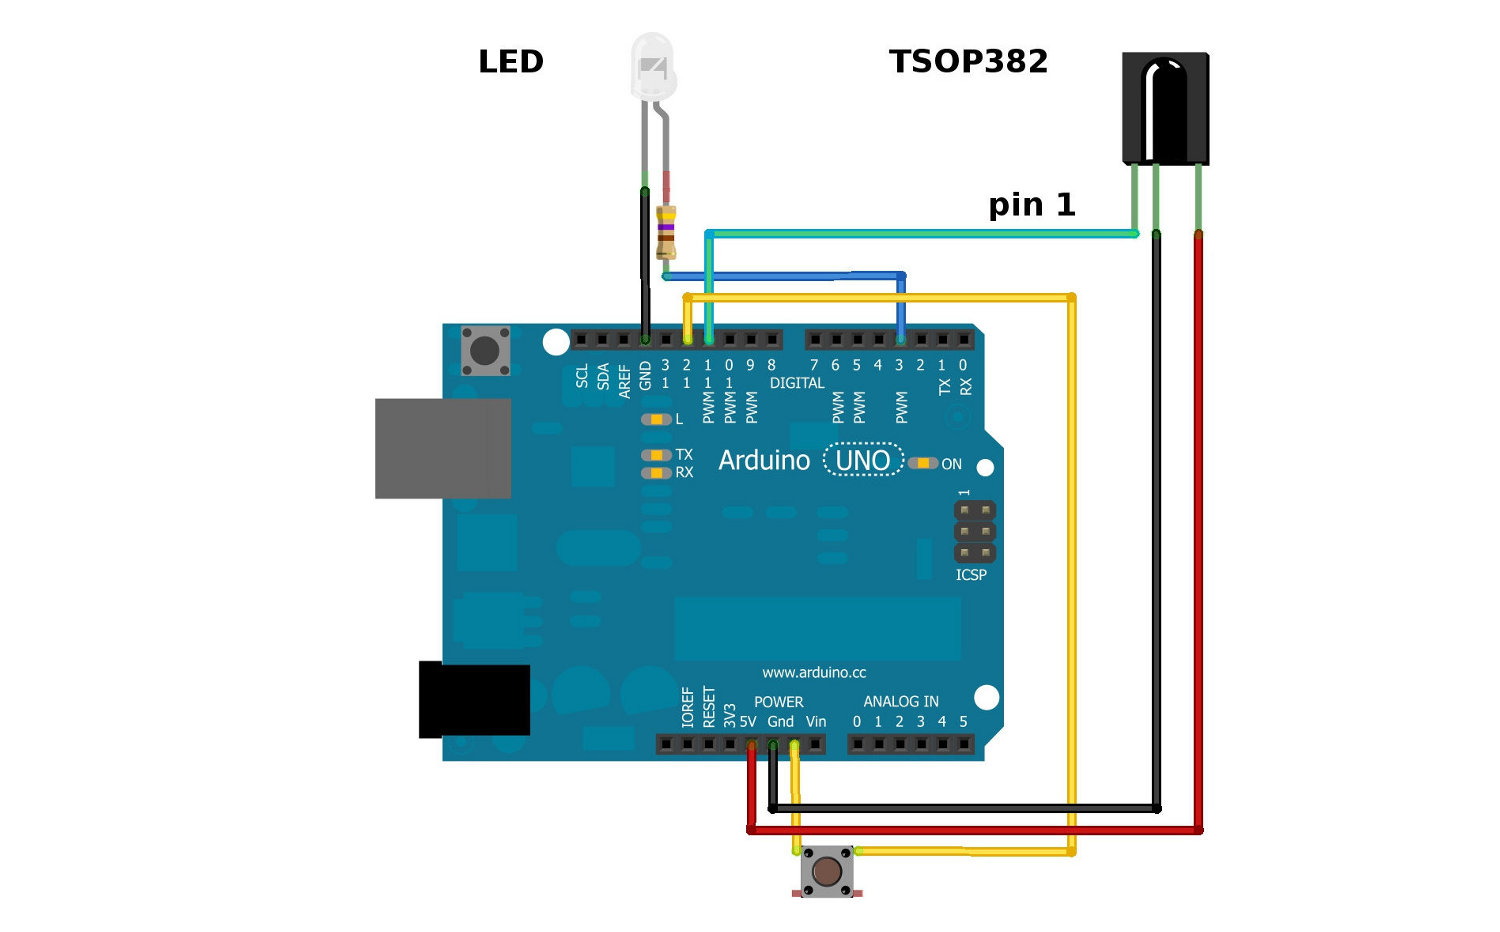 IR Communication - learn.sparkfun.com